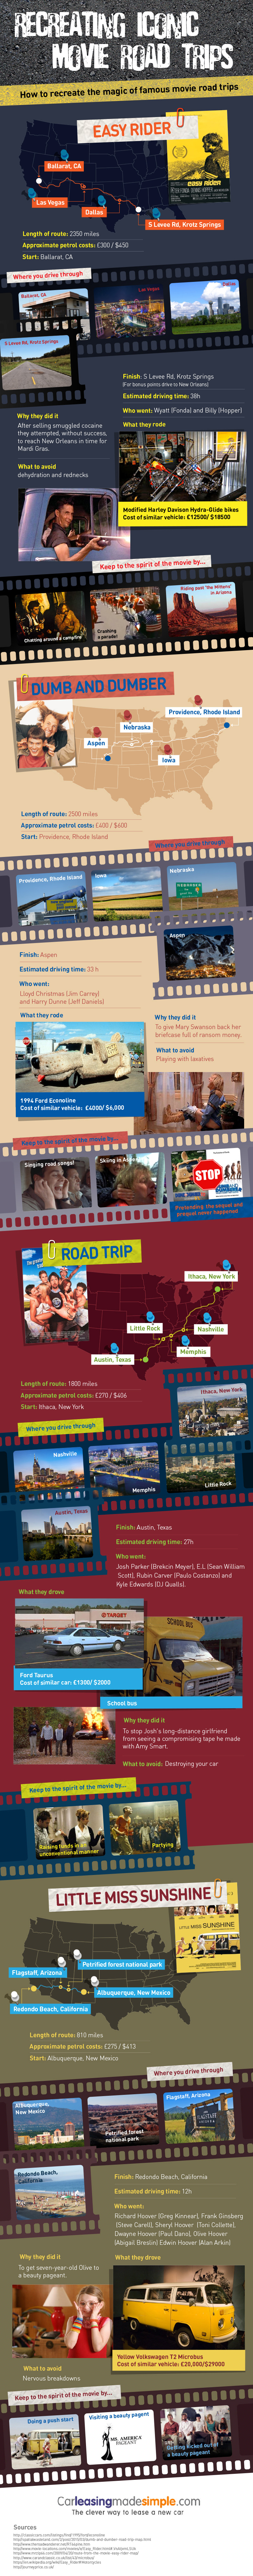 Recreating Movie Road Trips [Infographic]